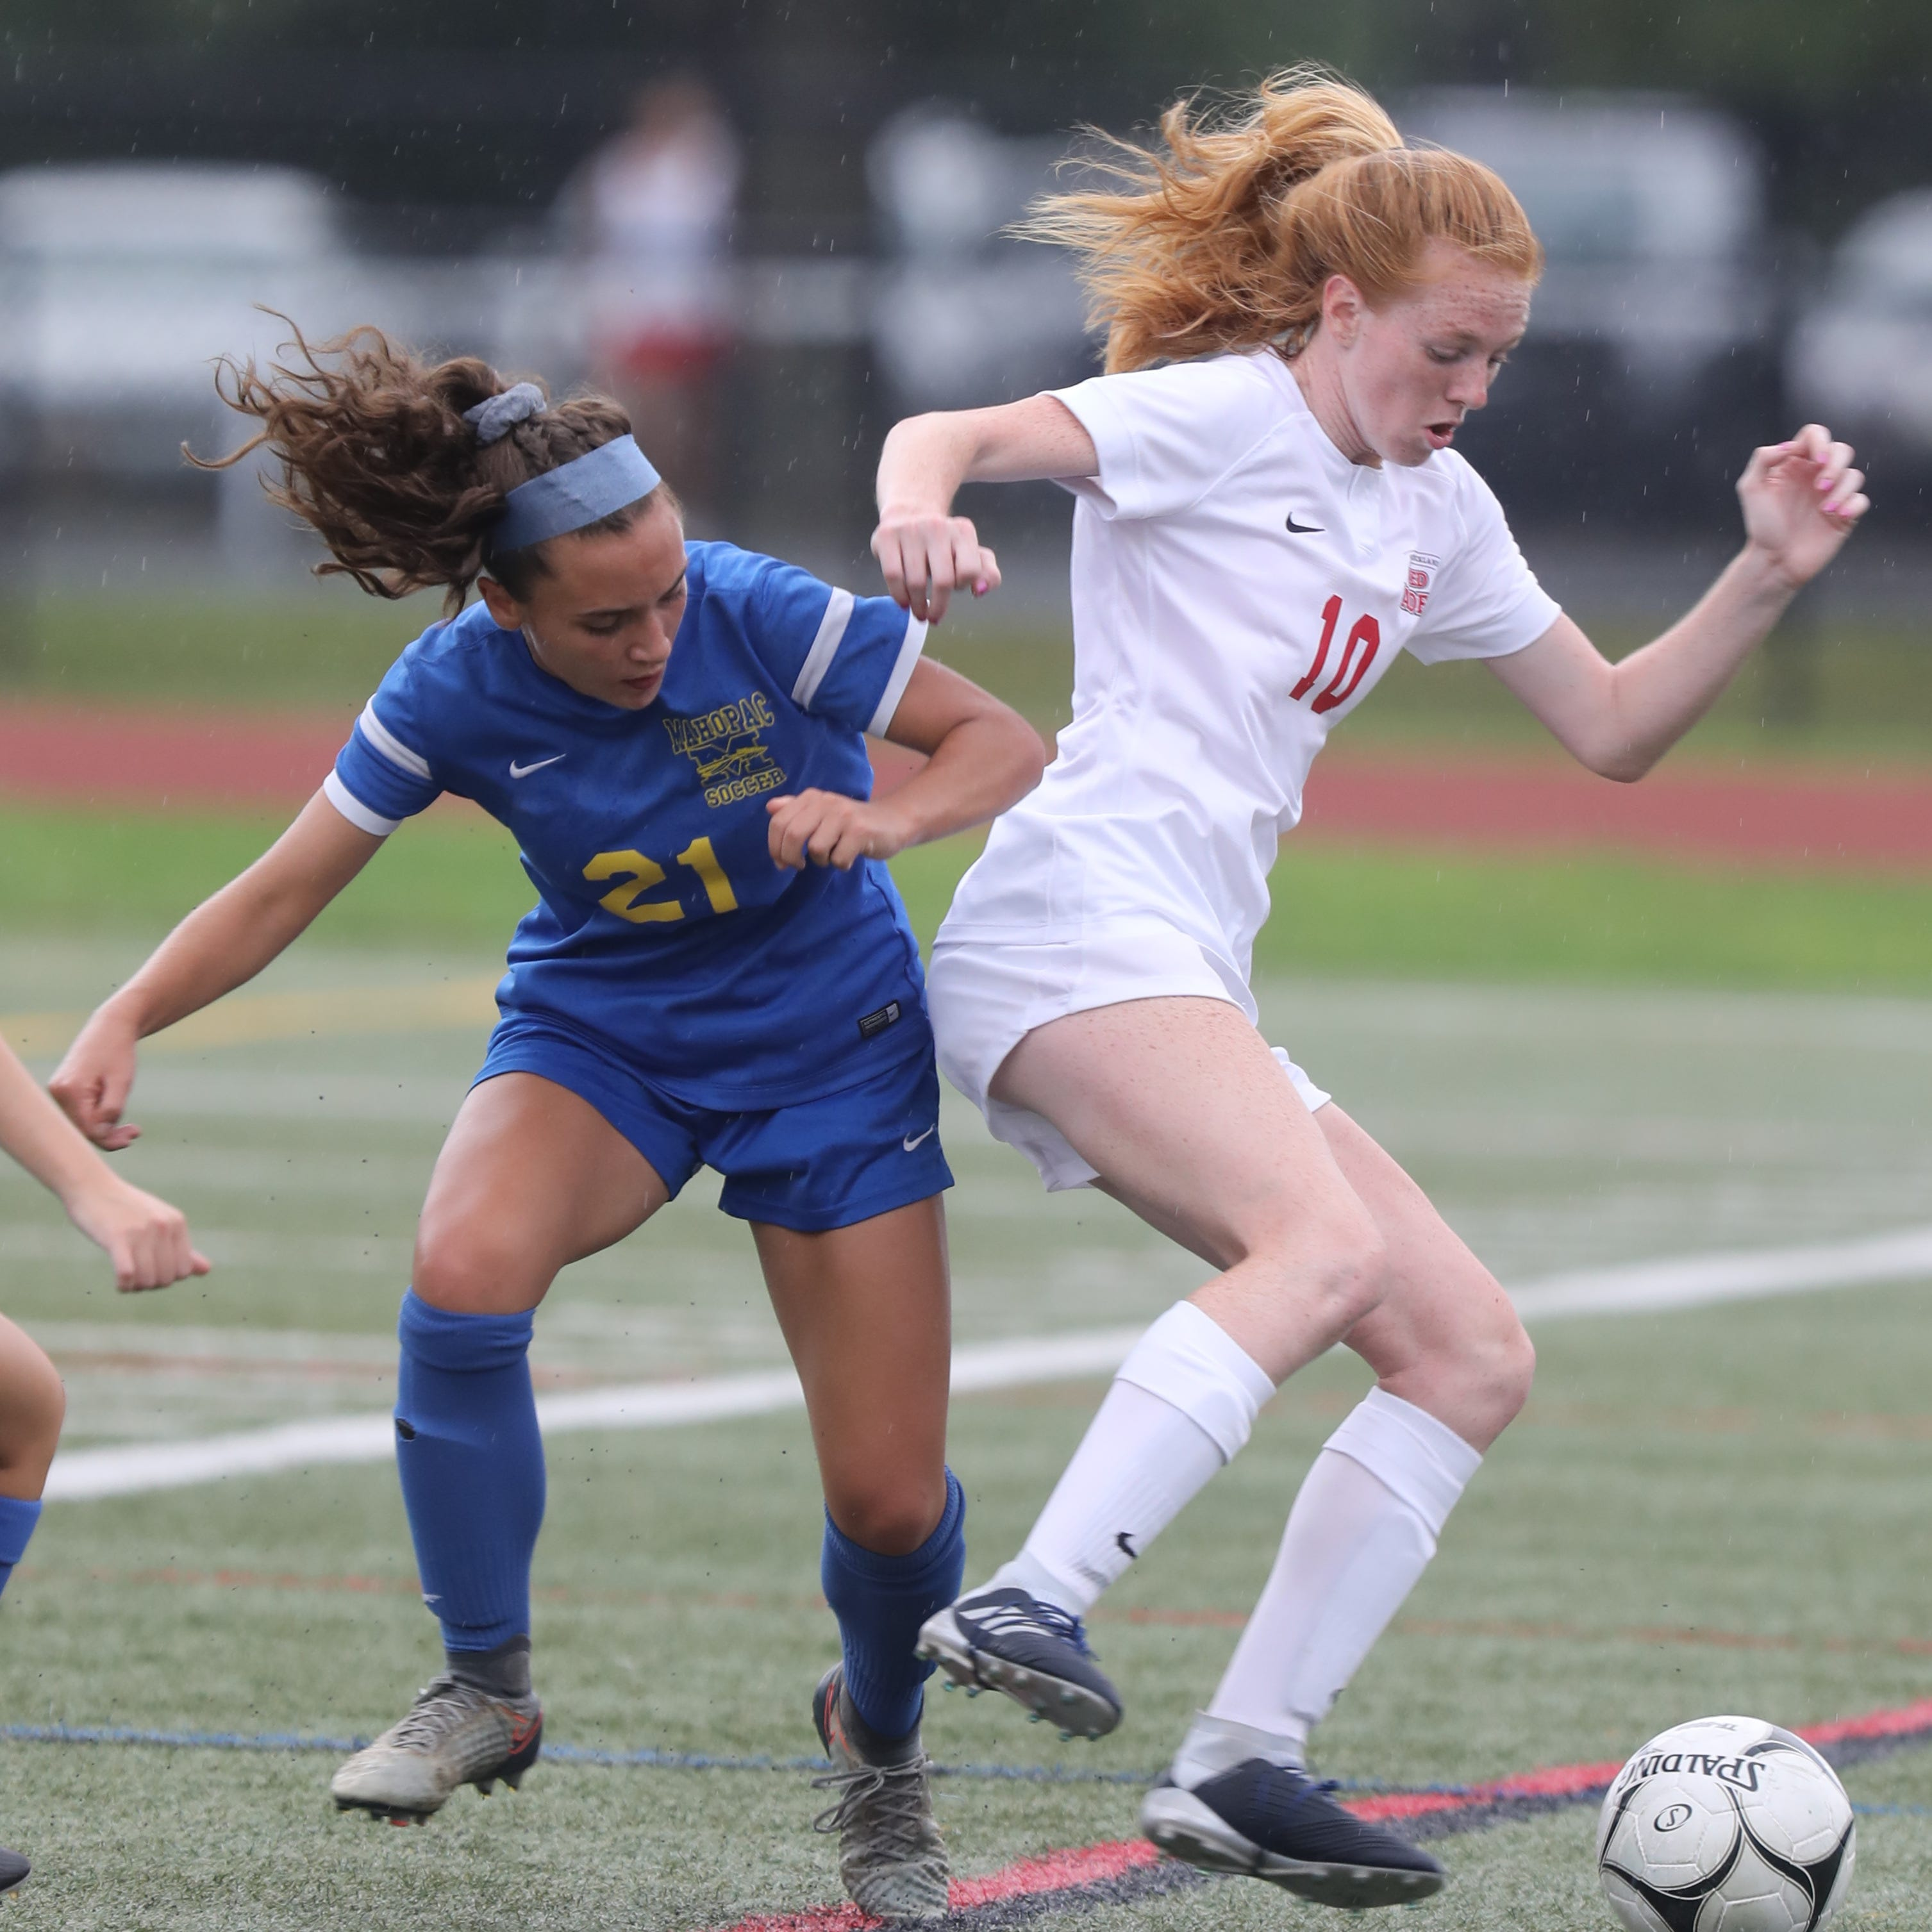 Girls soccer: Vote now for lohud's Player of the Week (Oct. 16)